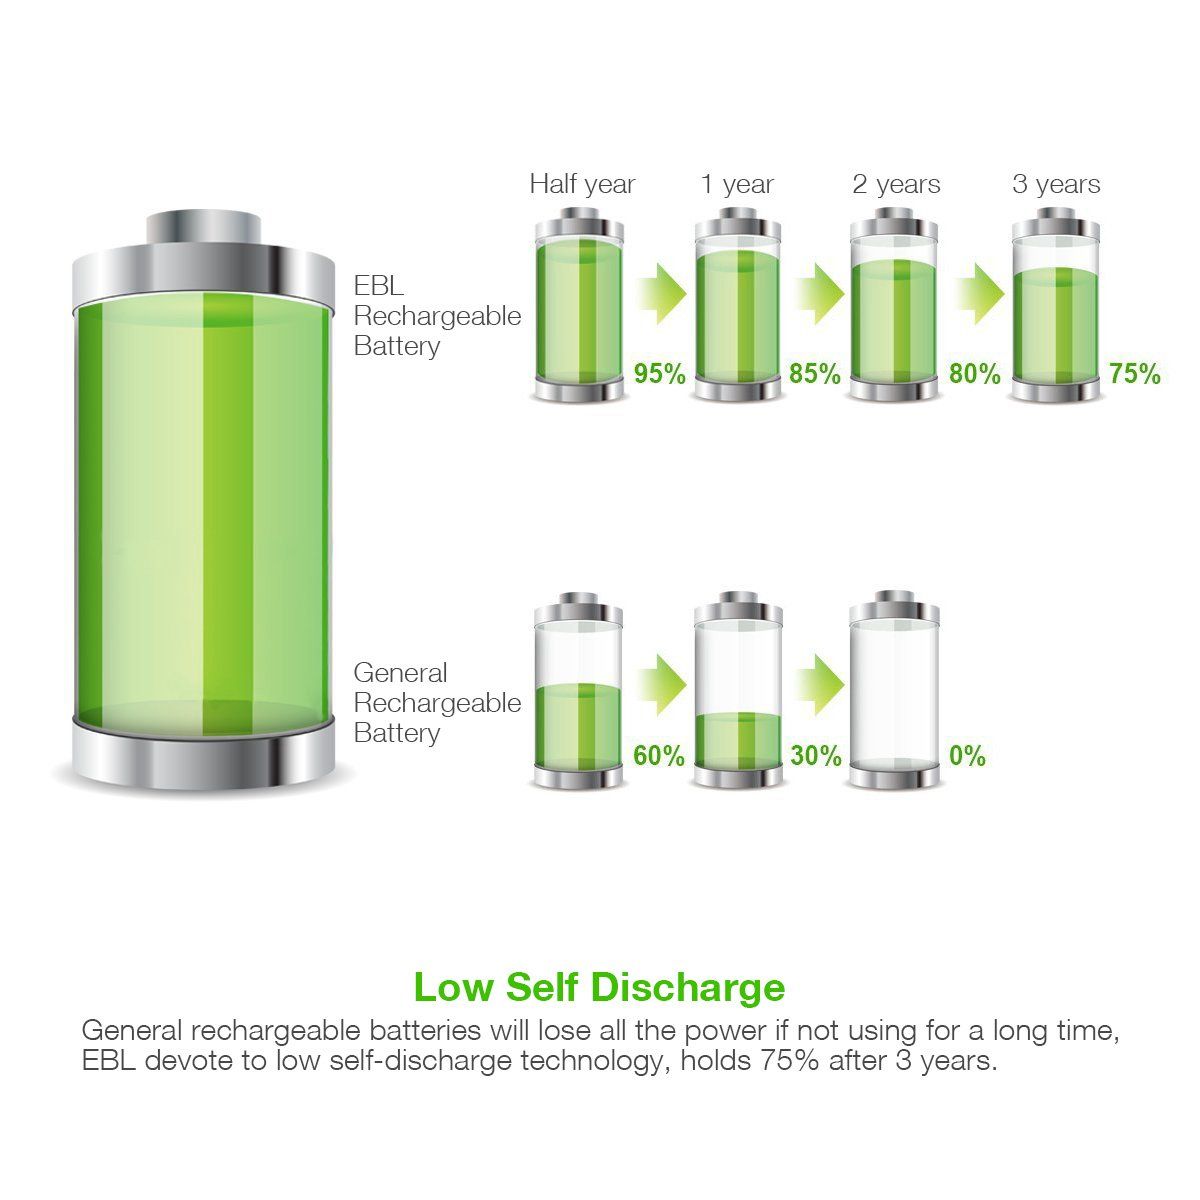 EBL 40Min iQuick Smart Battery Charger With USB Port and AA 2300mAh Rechargeable Batteries 4 Counts by EBL (Image #4)